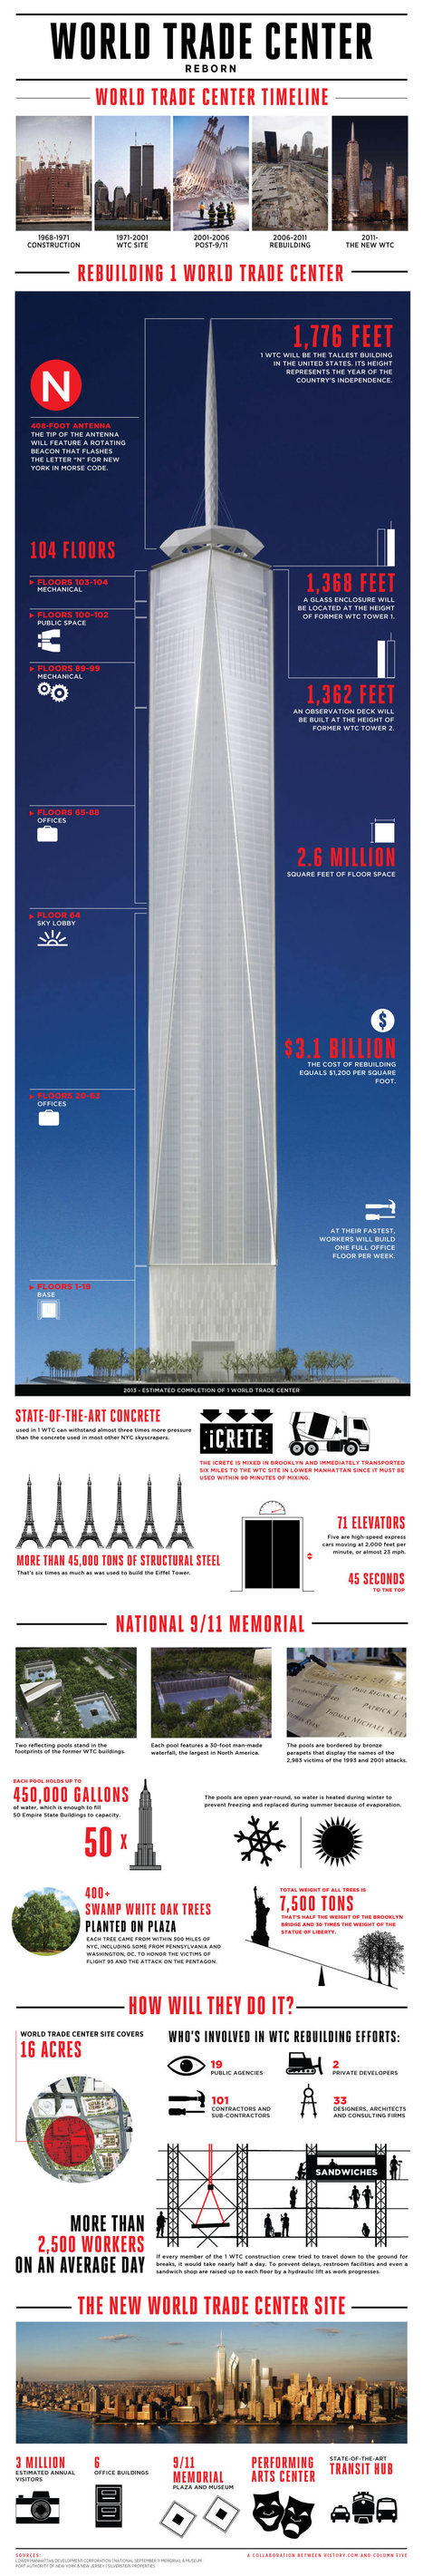 World Trade Center Reborn: Infographic | IGNITE Student Engagement in Math! | Scoop.it